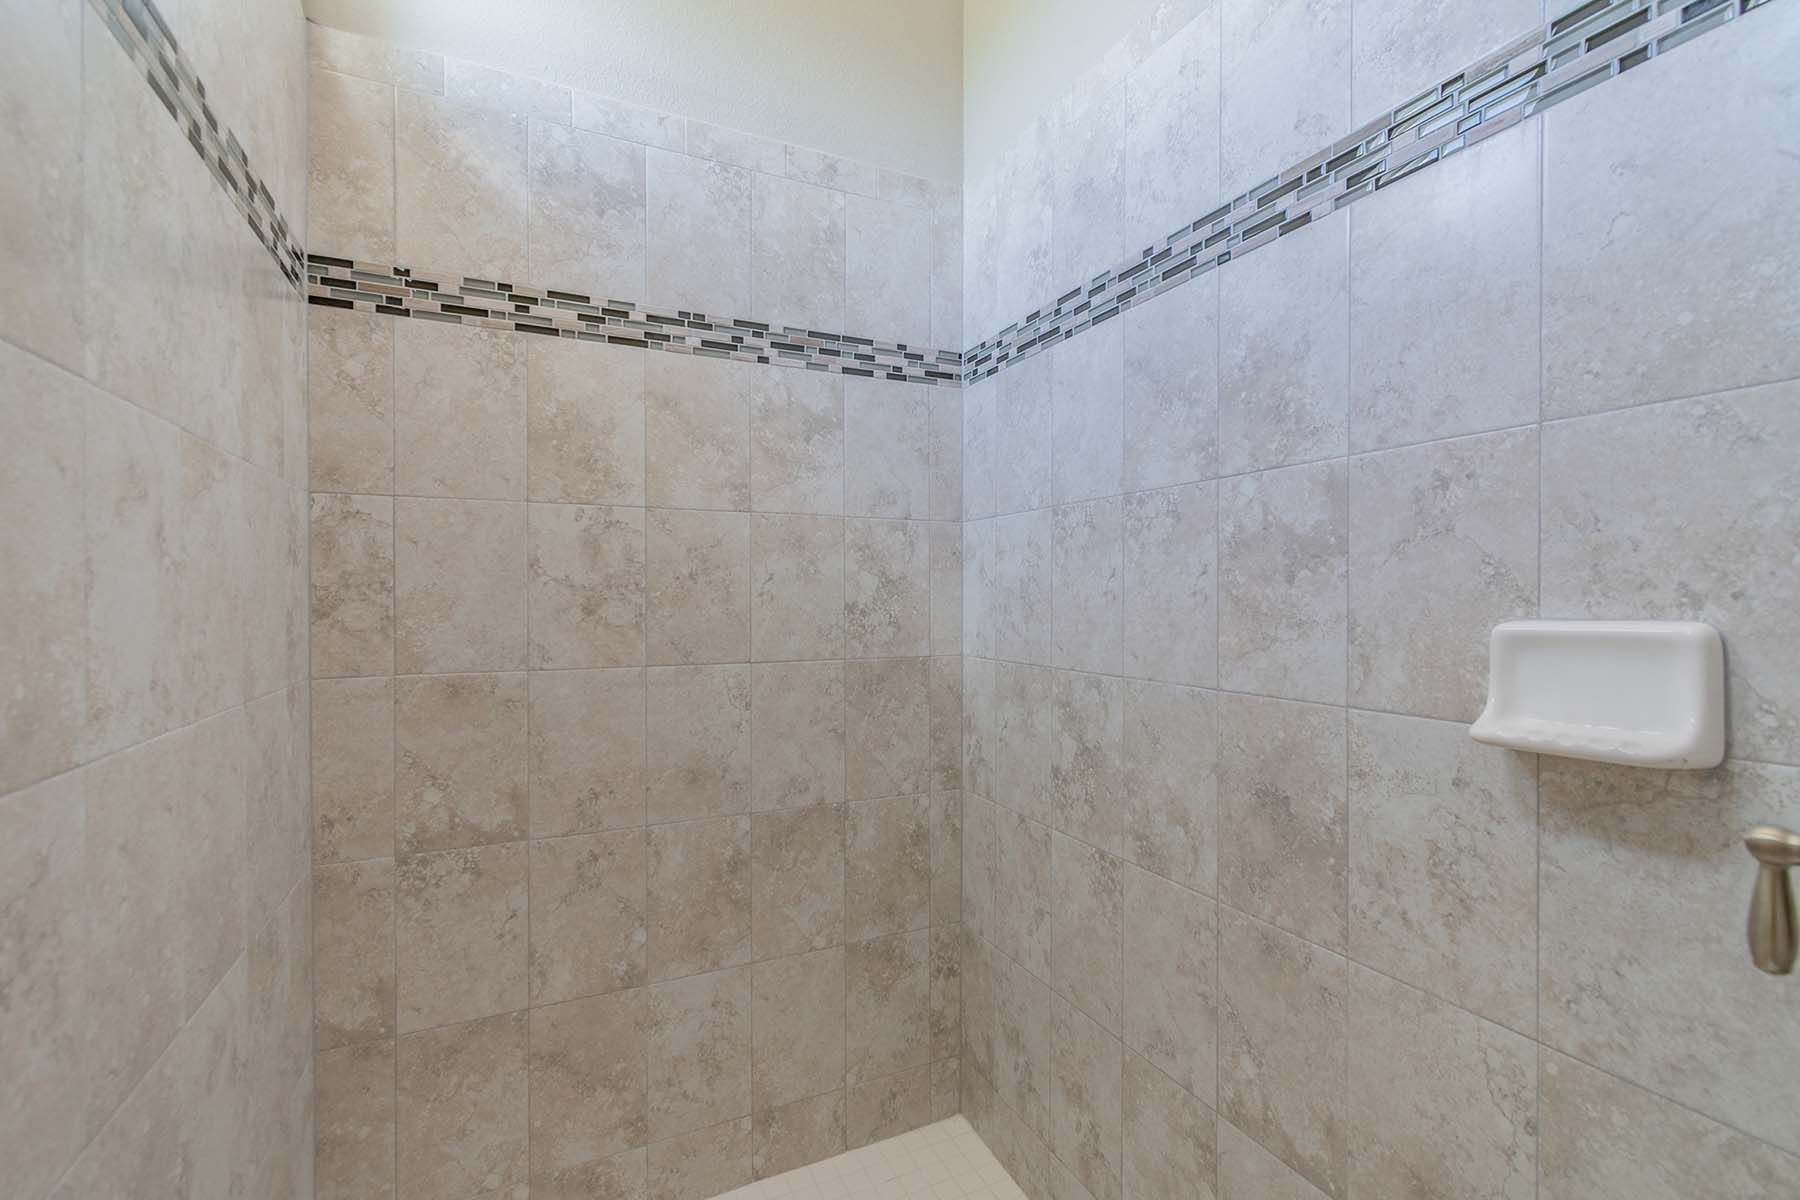 Bathroom featured in the Herrera By M/I Homes in Tampa-St. Petersburg, FL